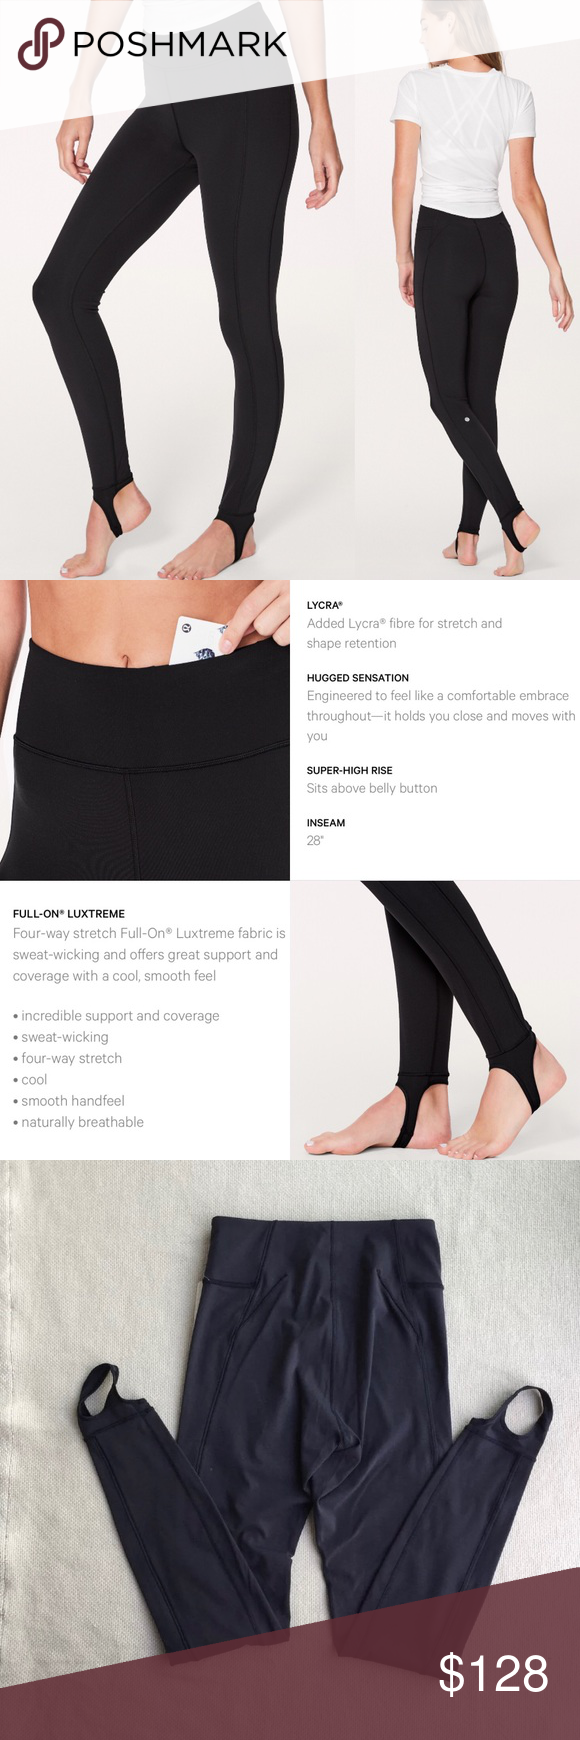 fff279dd1e4833 NWT❤️Lululemon Hold on Tight Stirrup Leggings Luon ❤️Sold Out Everywhere!!  Don't miss out on these booty POPPIN magic stirrup leggings!